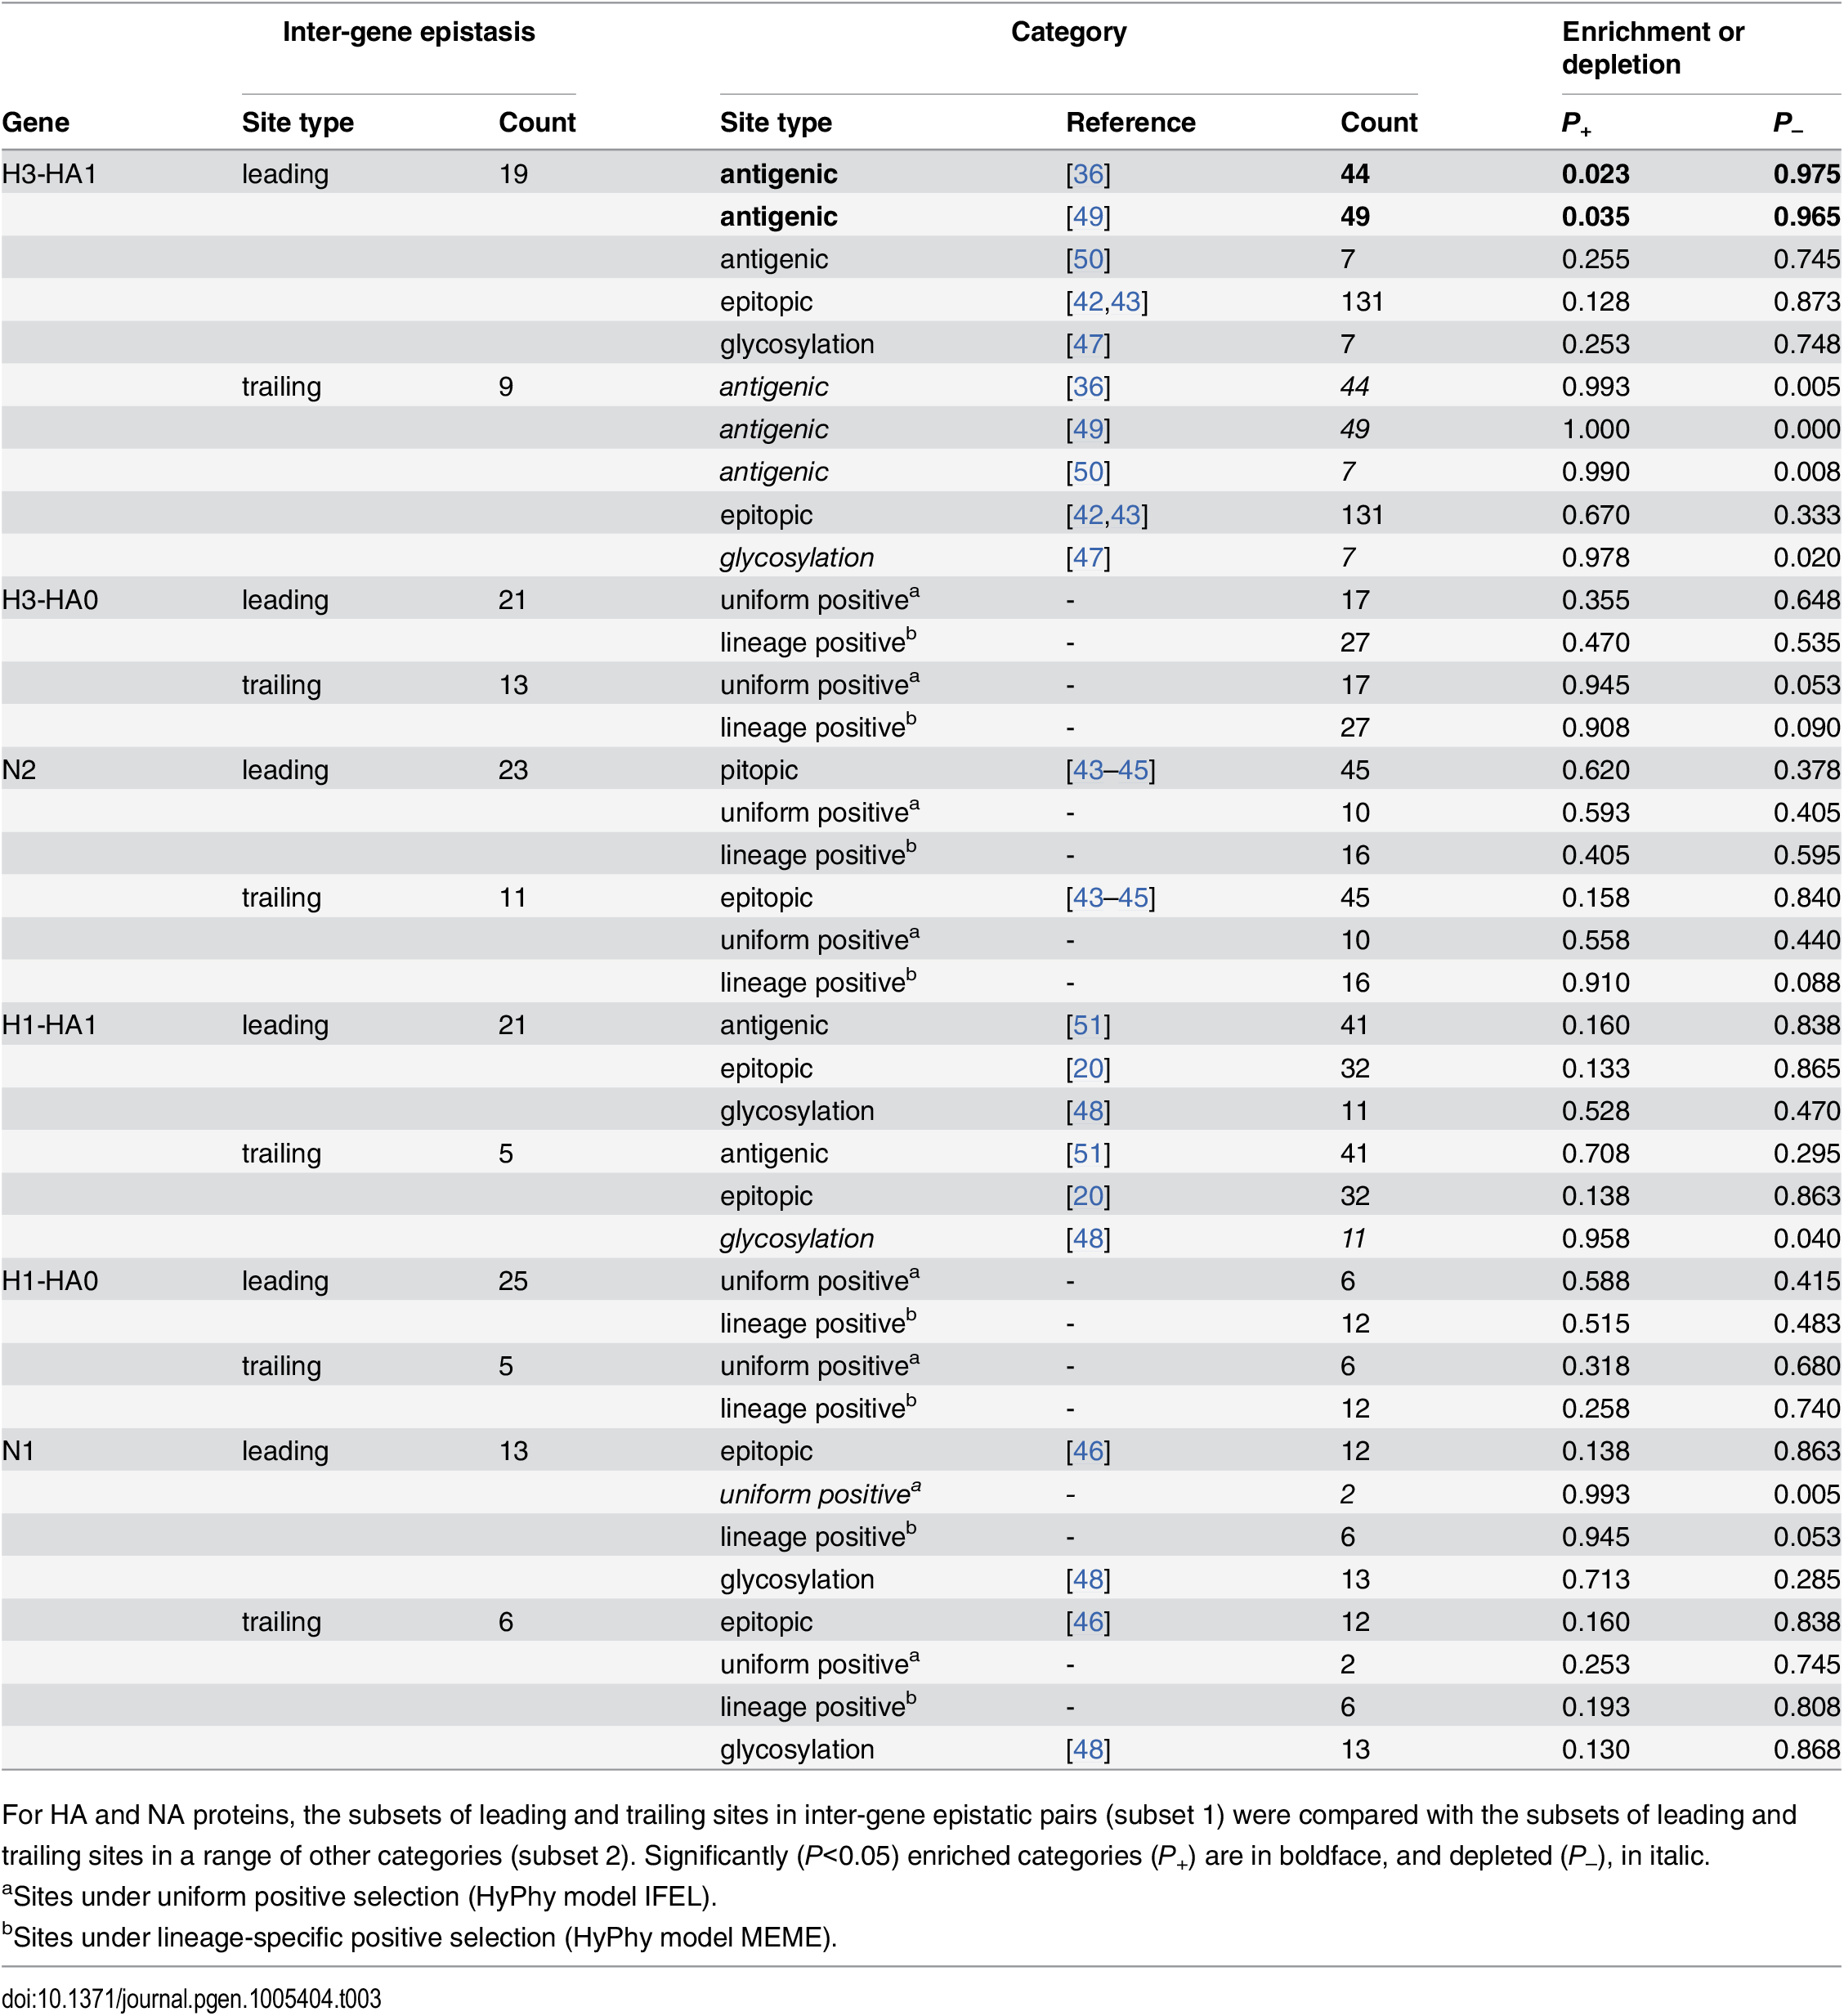 Comparisons of sets of sites evolving under inter-gene epistasis with sets of sites with known properties.